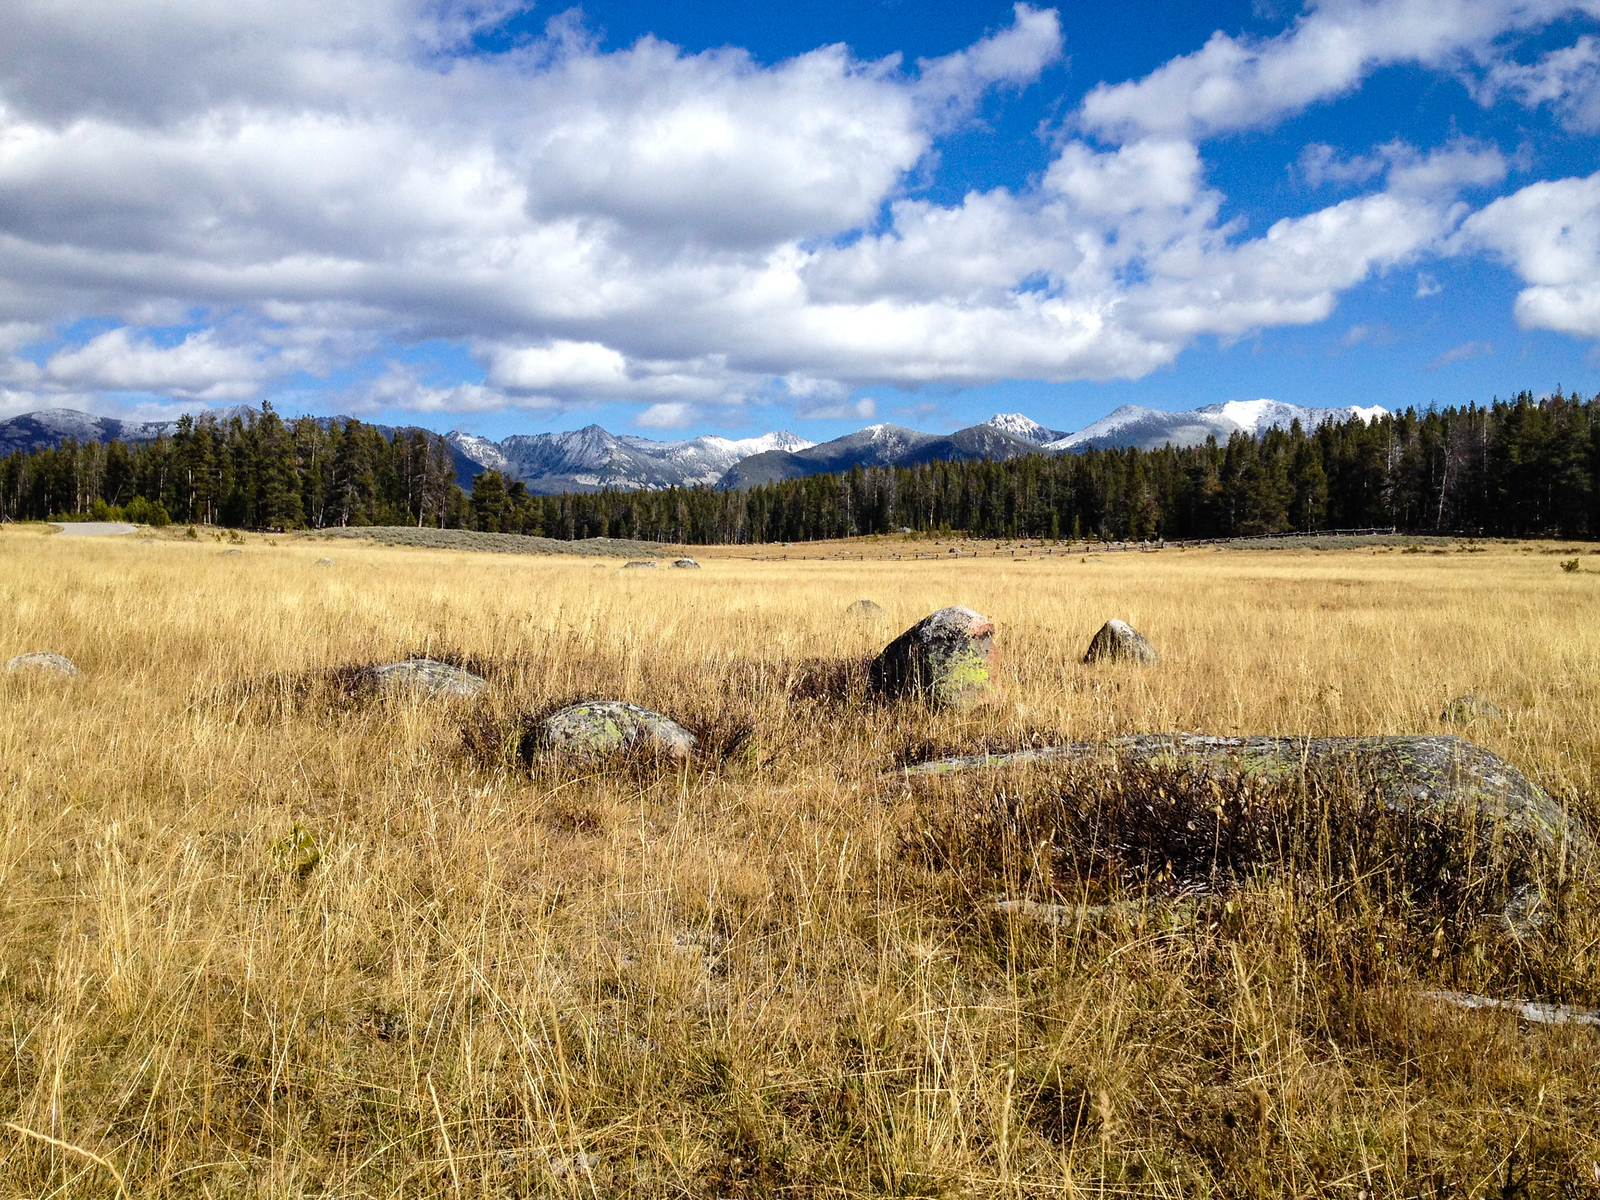 You'll discover Montana's big sky while exploring the Pioneer Mountains Scenic Byway on a summer road trip.